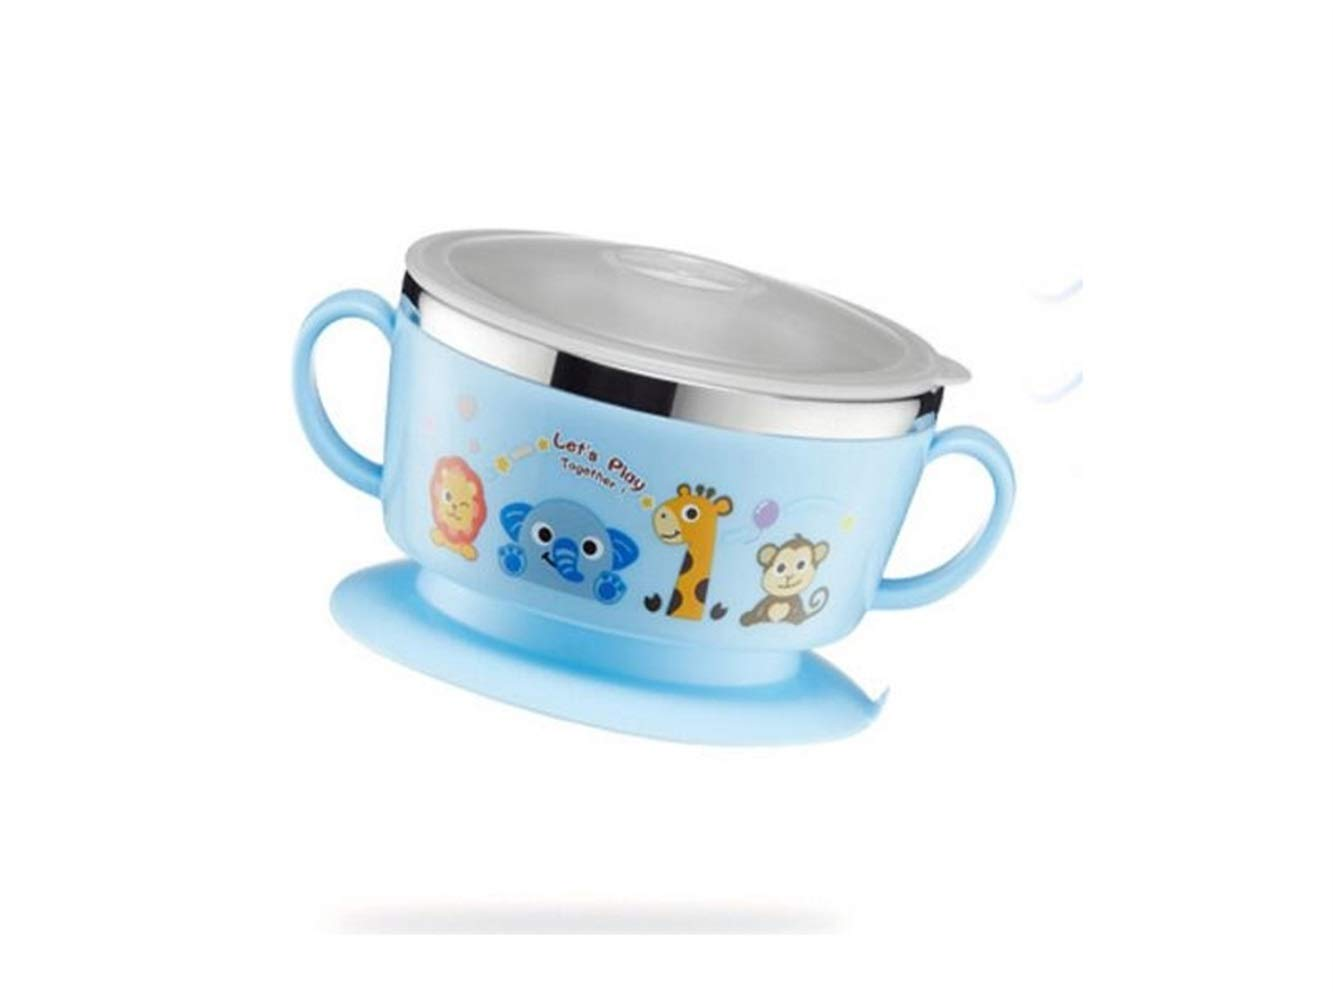 Yuchoi Contemporary Animal Pattern Baby Feeding Bowl Anti-Scald Stainless Steel Children Dish Insulation Bowl with Lid and Double Handles for Kids Students(Blue) by Yuchoi (Image #5)